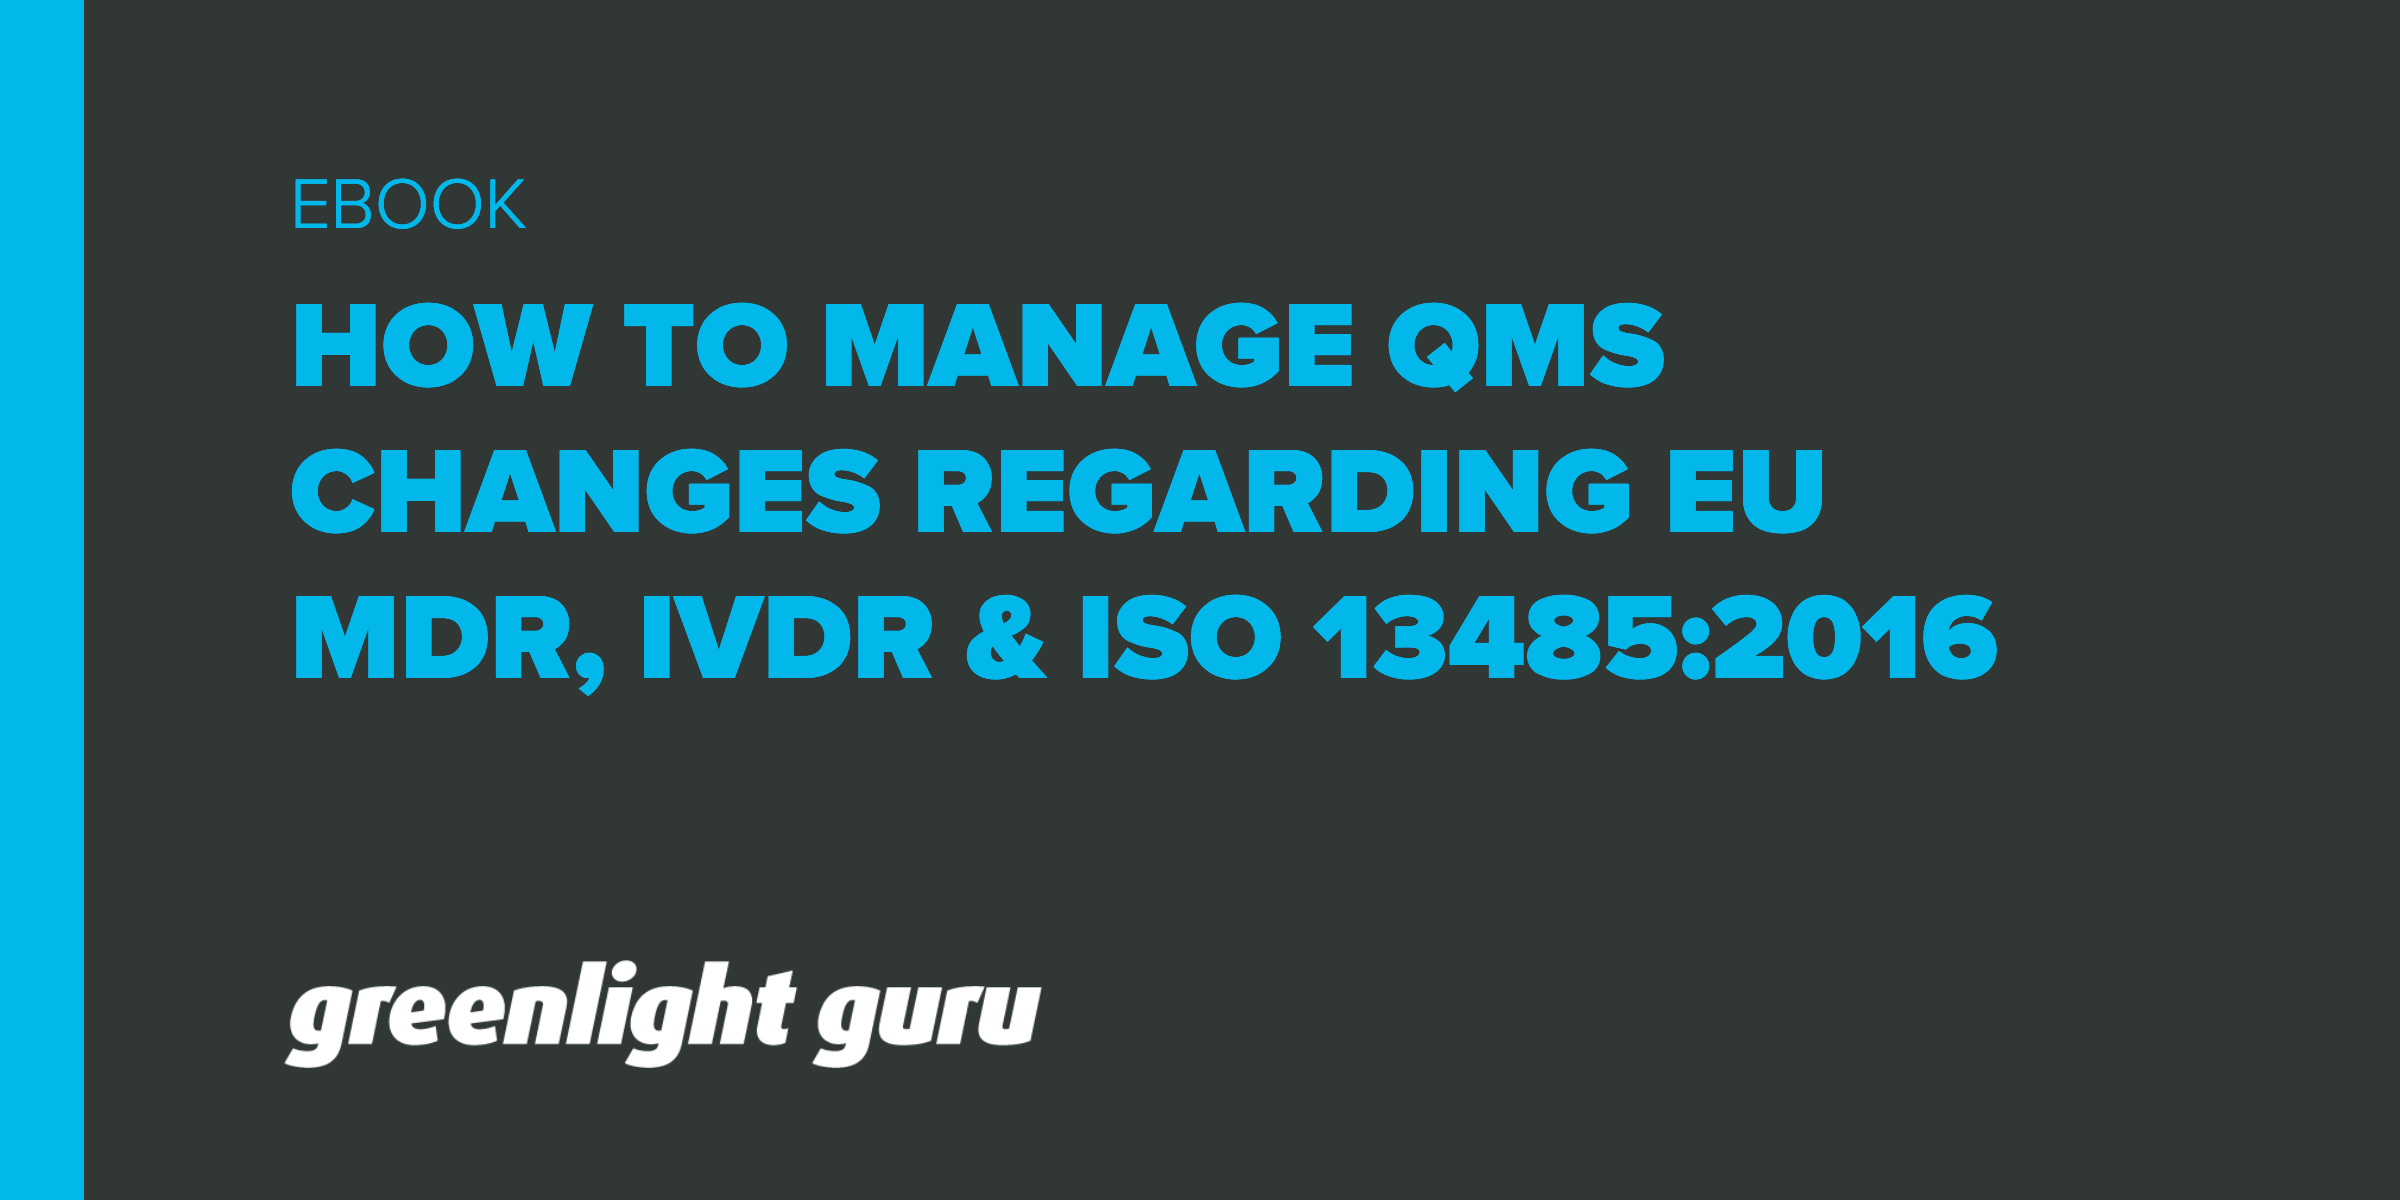 Iso 13485 iso 9000 quality management system international.